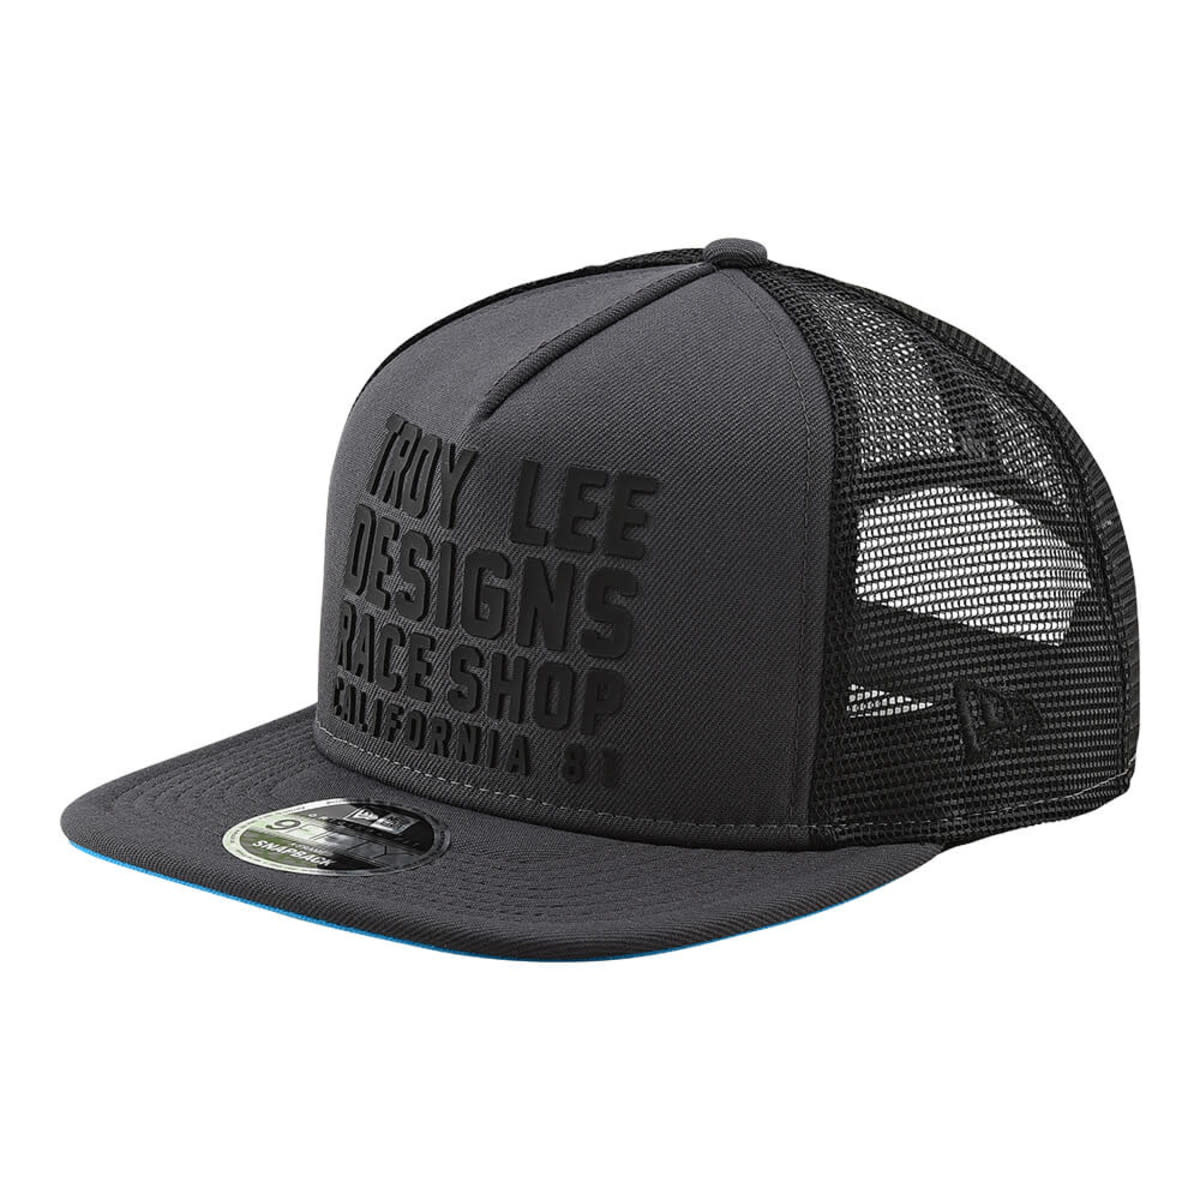 TROY LEE DESIGNS TLD HAT RC CALI SNAP BACK Graphite/Blue OS